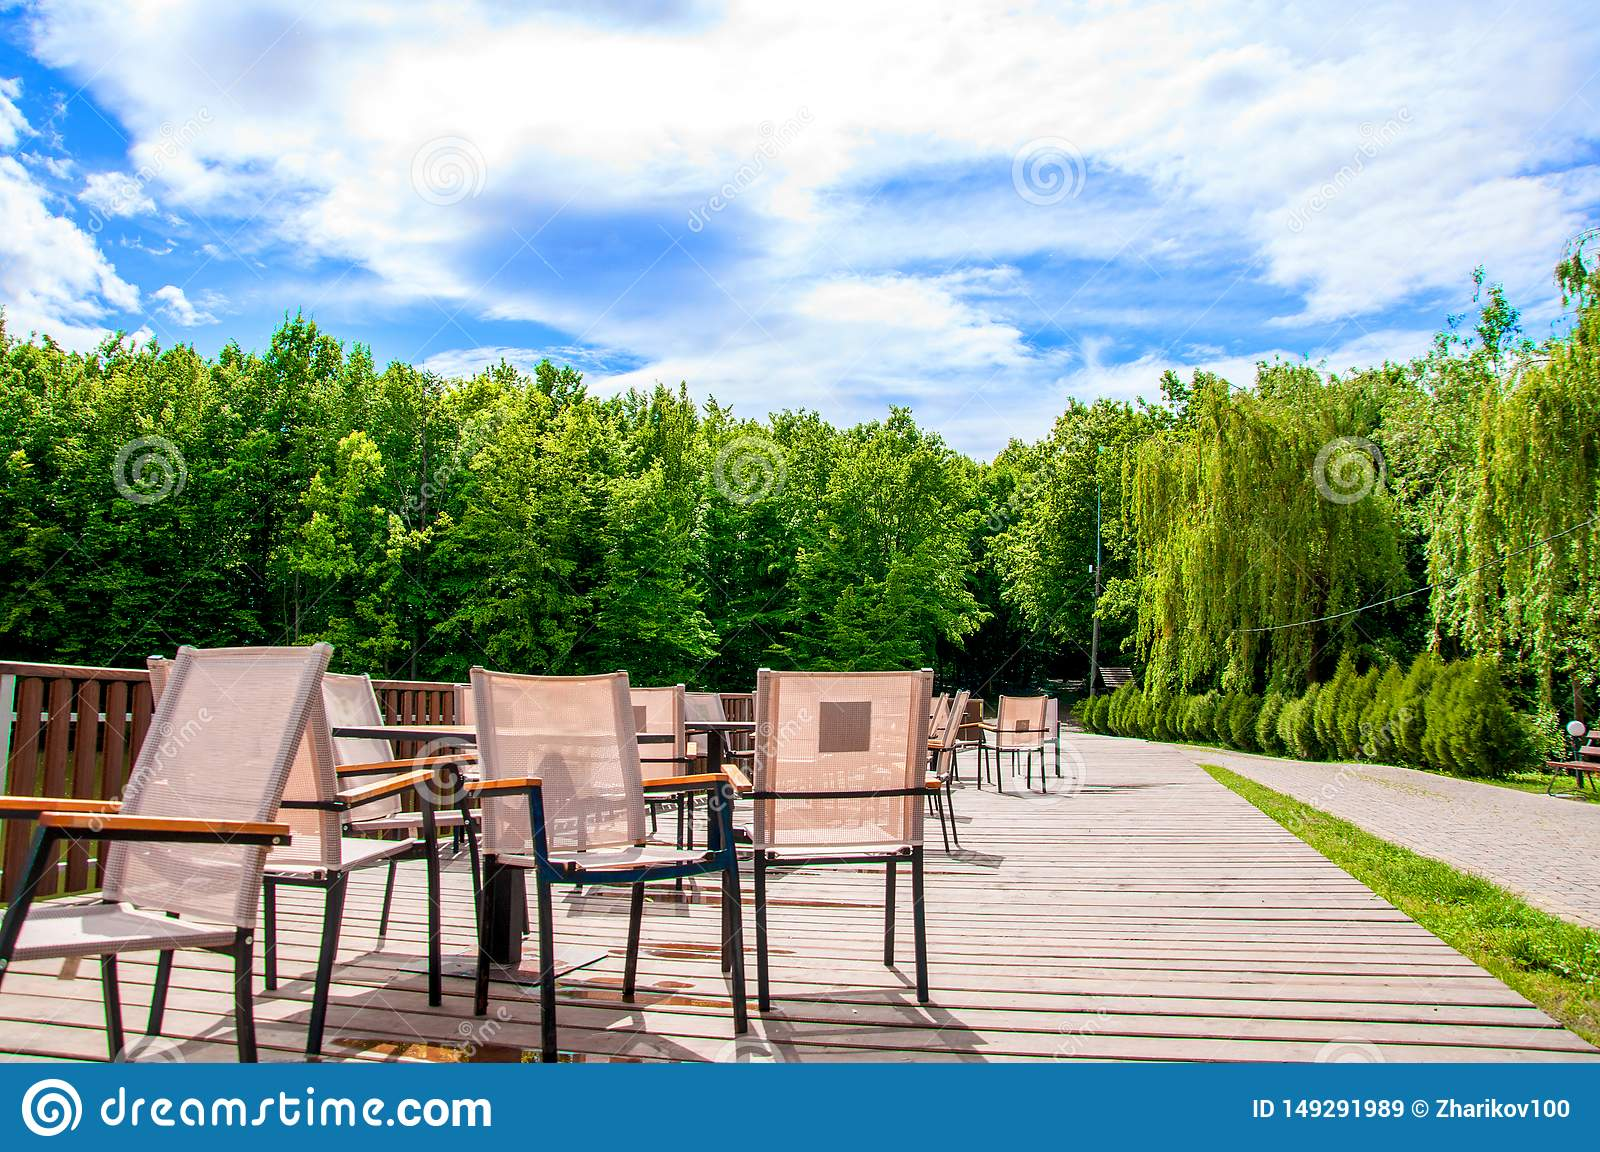 Wooden bridge with a fence on which tables and chairs are located. Summer cafe. It`s summer outside. The sun is shining.